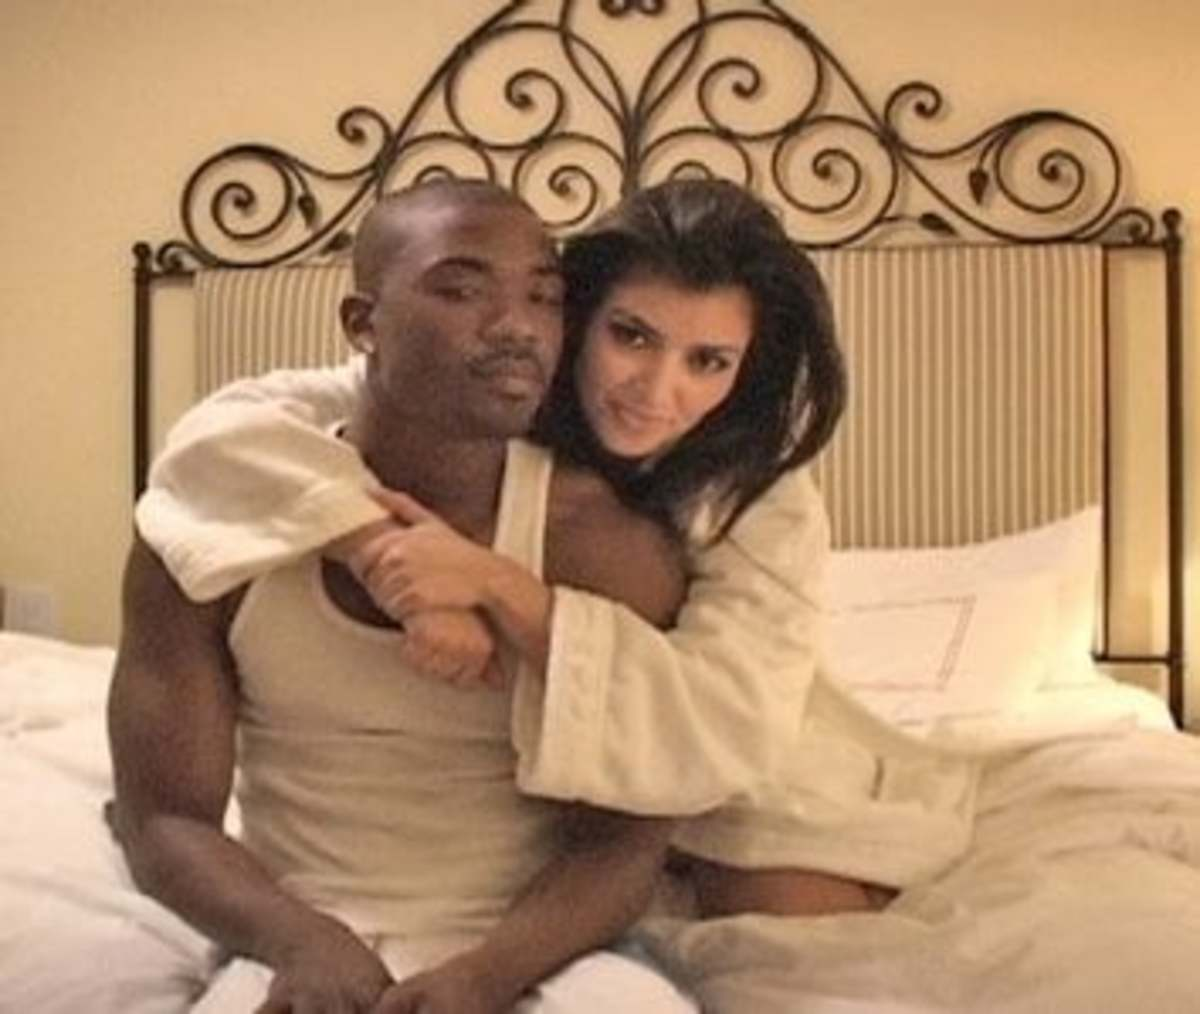 Kim Kardashian's sex tape with Reggie Bush gave the socialite heaps of publicity. The after effects of this publicity could be compared to the celebrity status that Paris Hilton received after One Night in Paris was released.